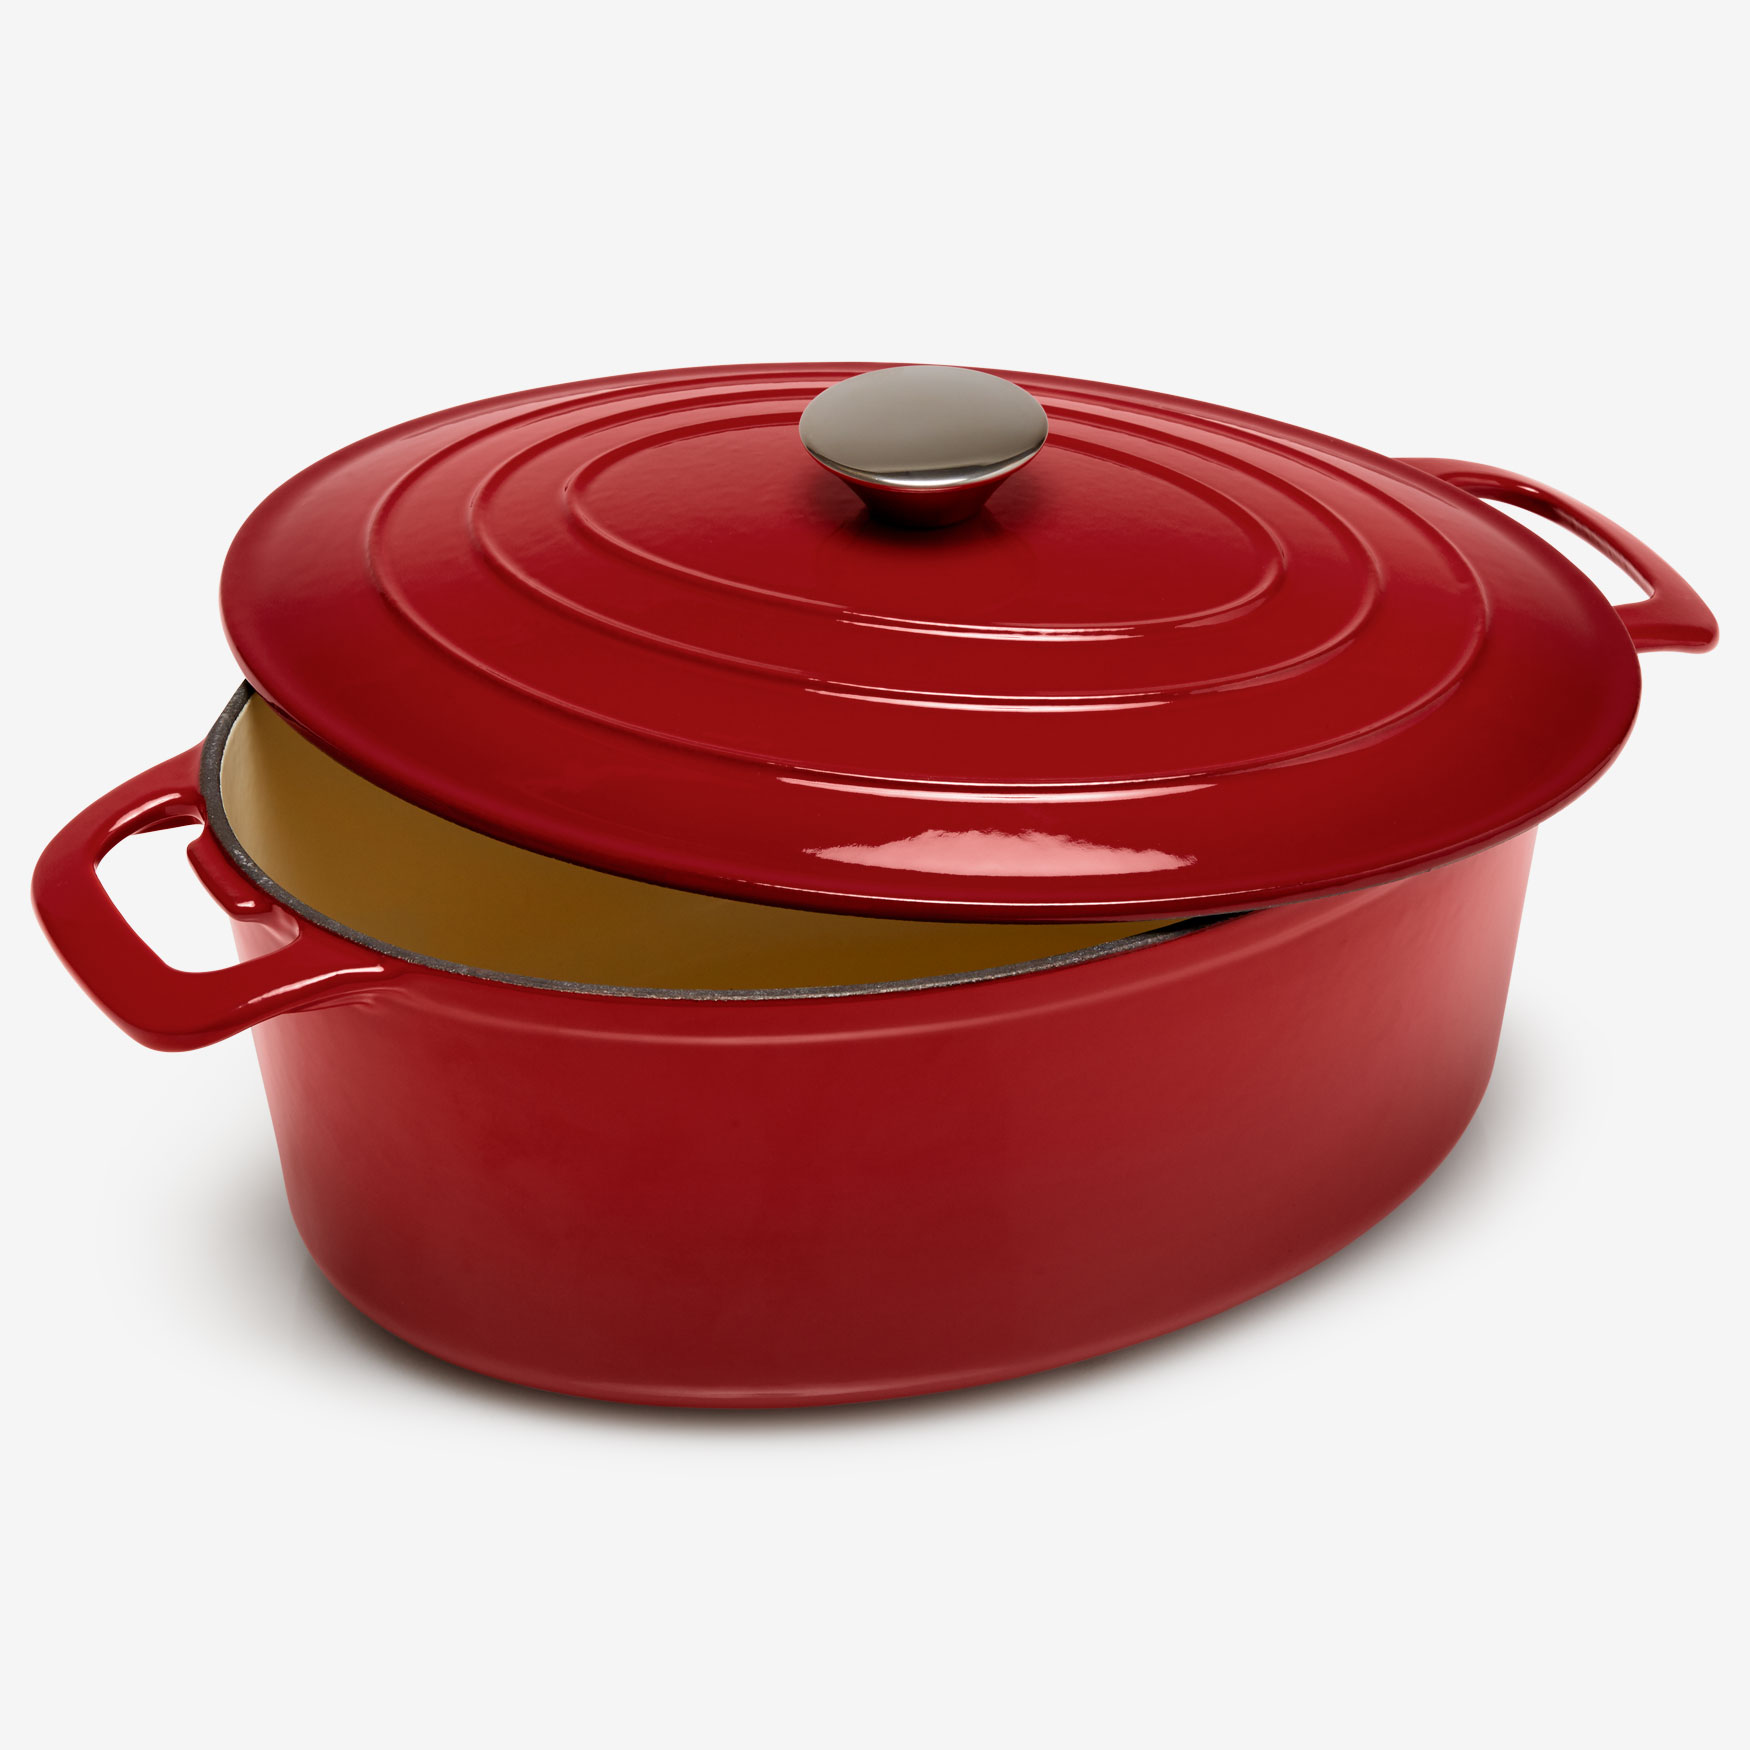 6-Lt. Cast Iron Enameled Oval Casserole, RED